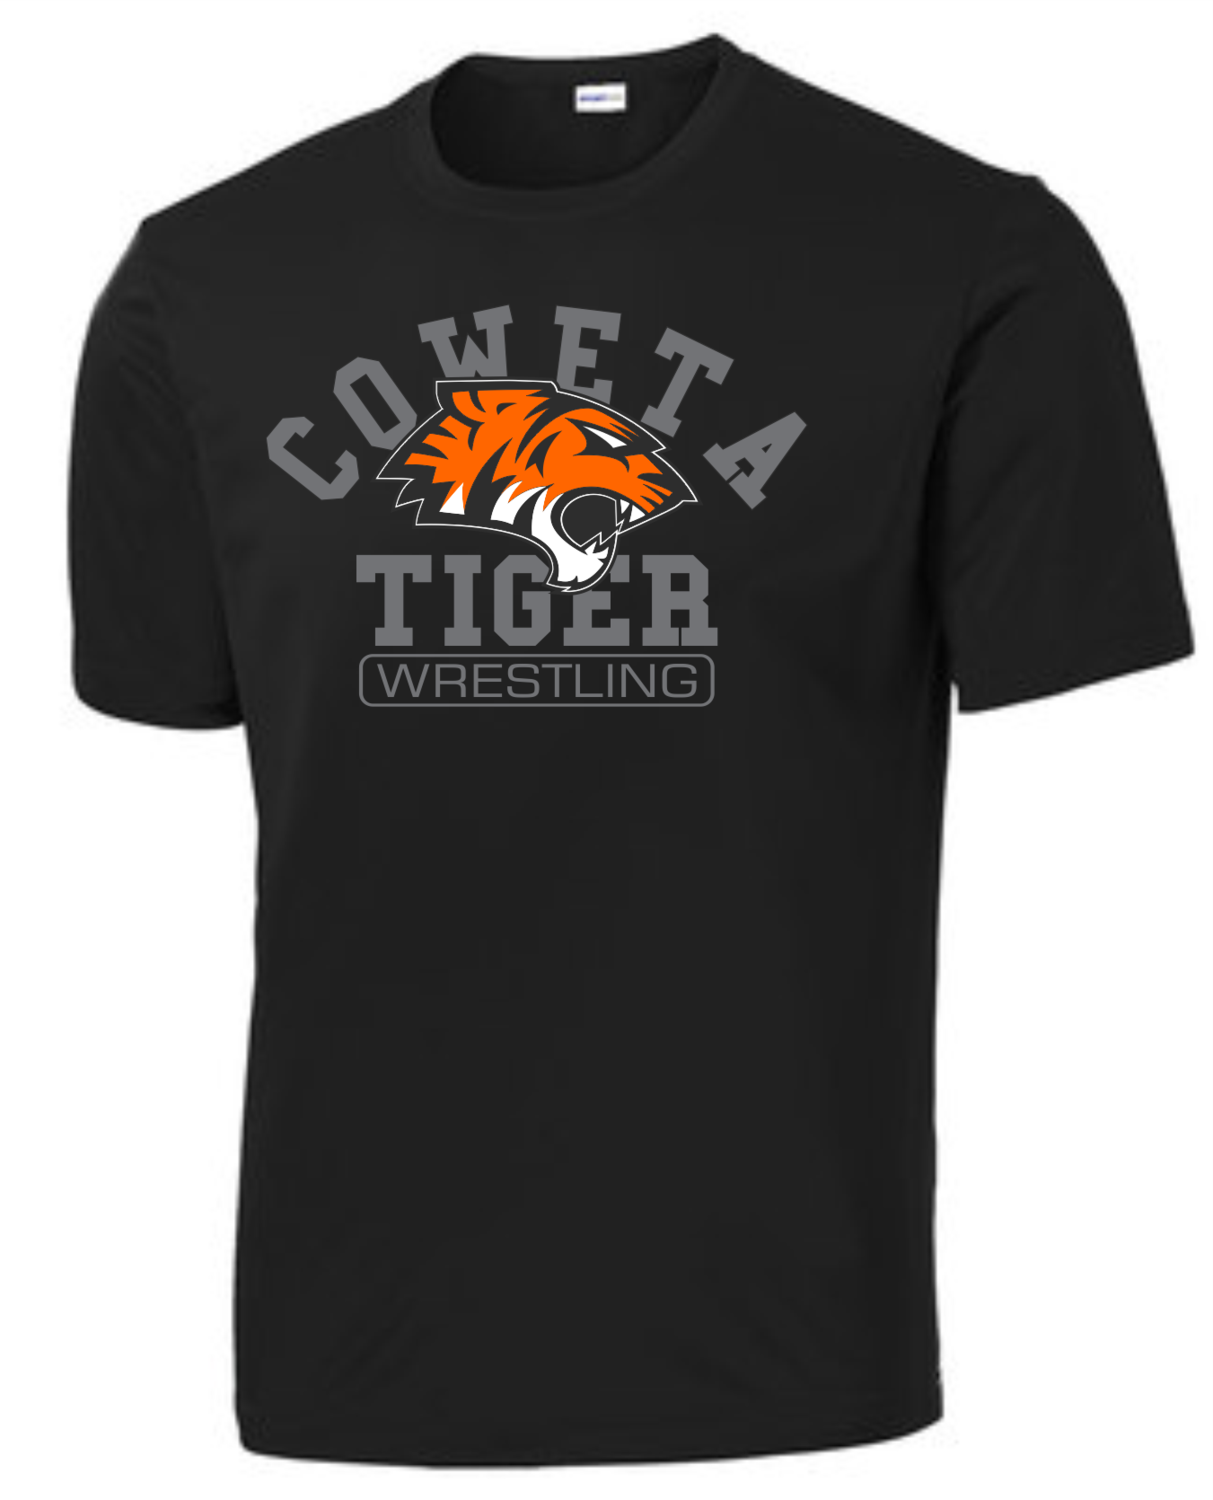 Sport-Tek® PosiCharge® Competitor™ Tee - Adult/Youth.  *TEAM GEAR SHIRT* Wrestlers will receive a drifit with this logo